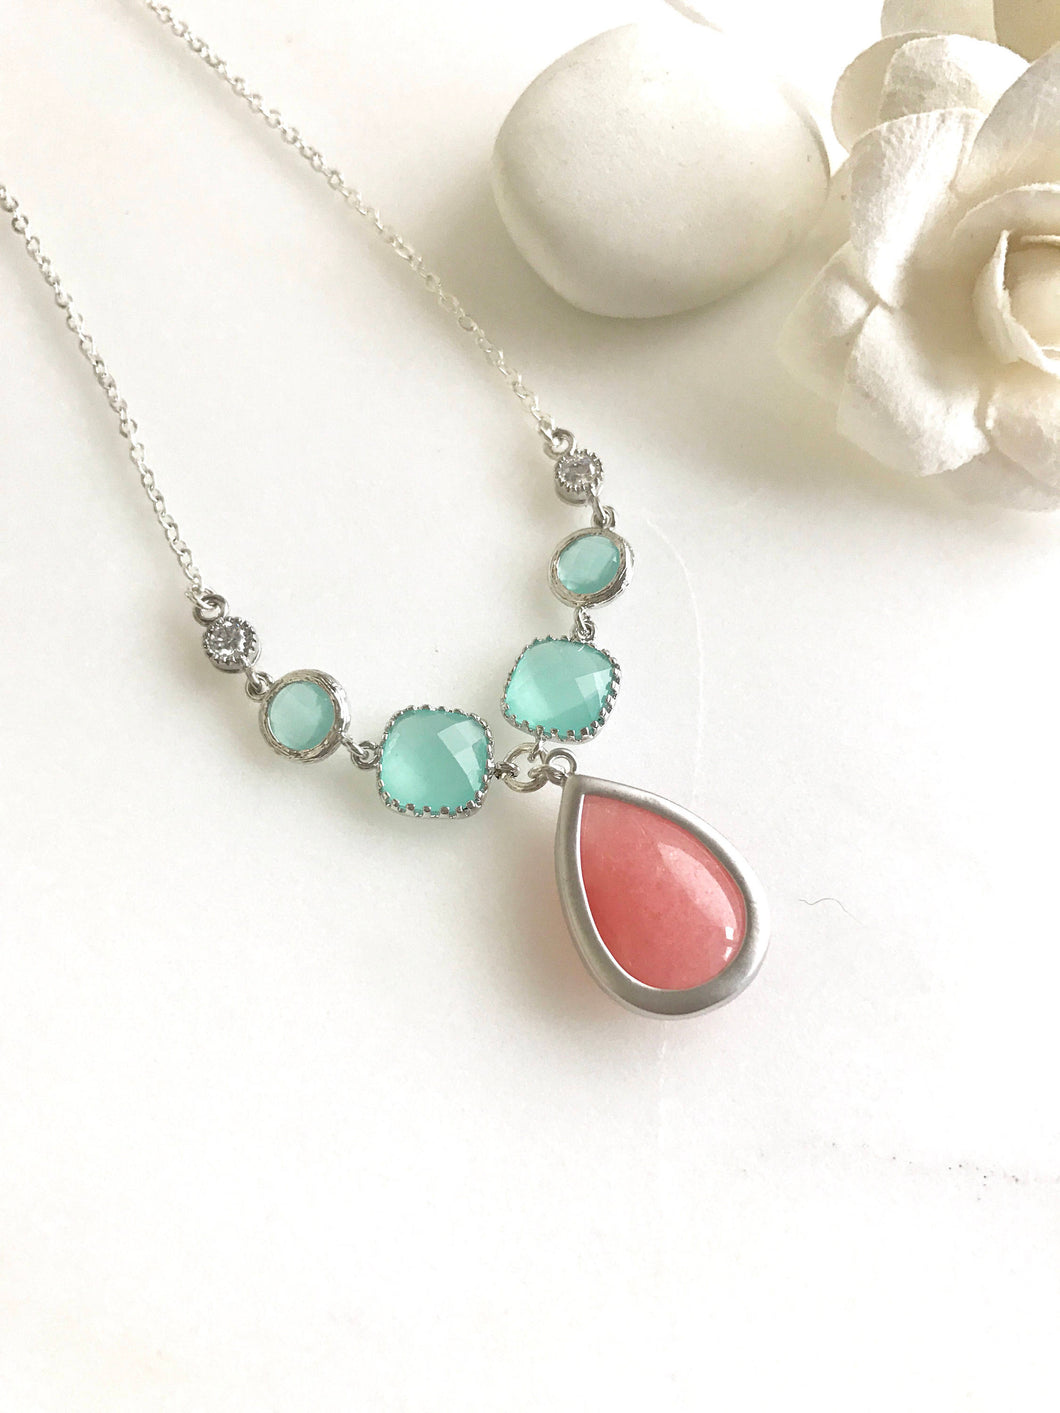 Unique Jewel Pendant Necklace with Shades of Coral Pink and Aqua. Unique Fashion Necklace. Silver Jewel Necklace.Bridal Necklace.